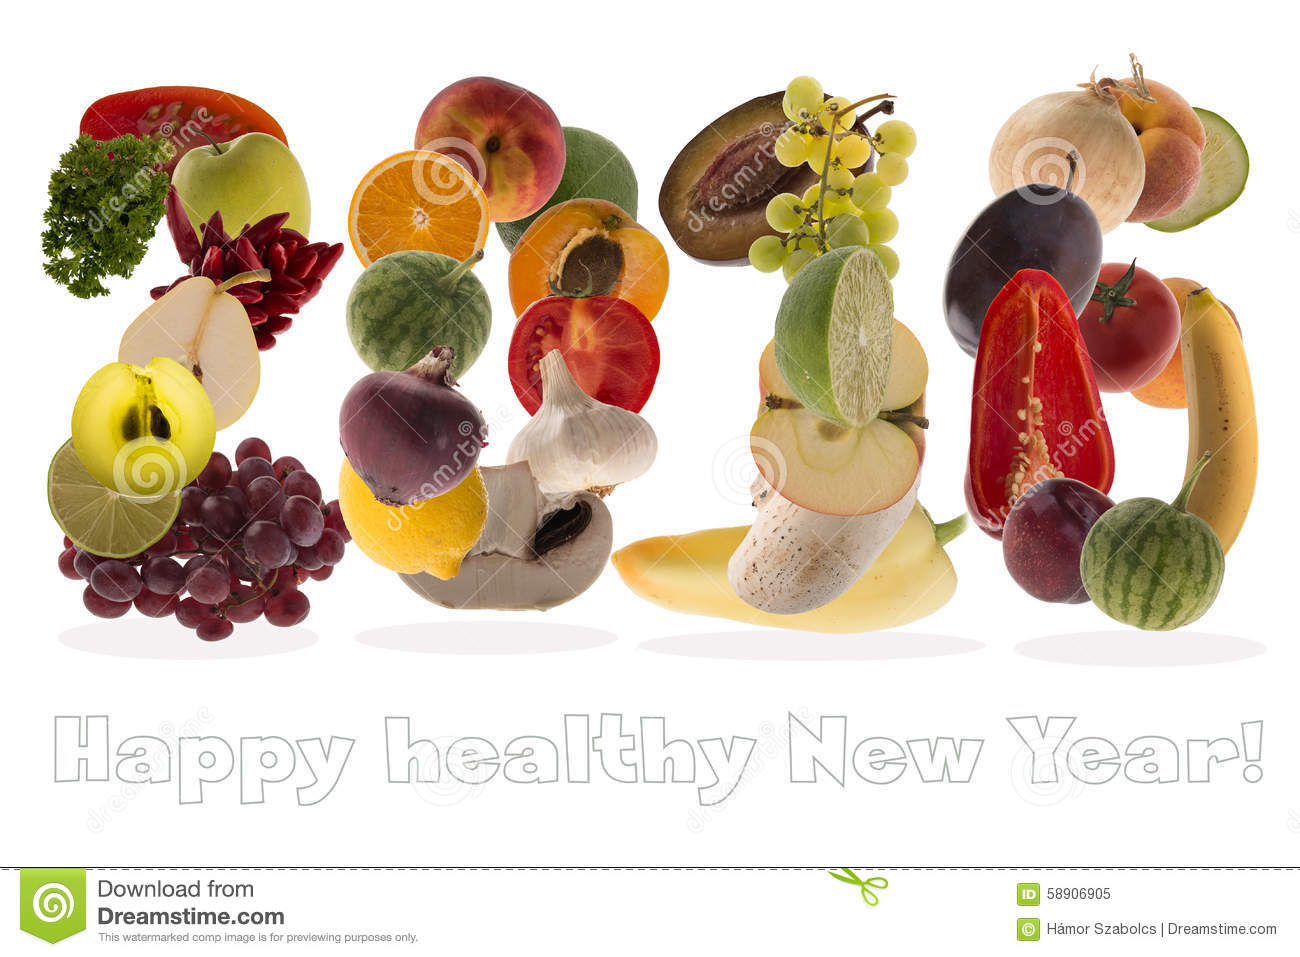 2016 greeting with fruits and vegetables on white background